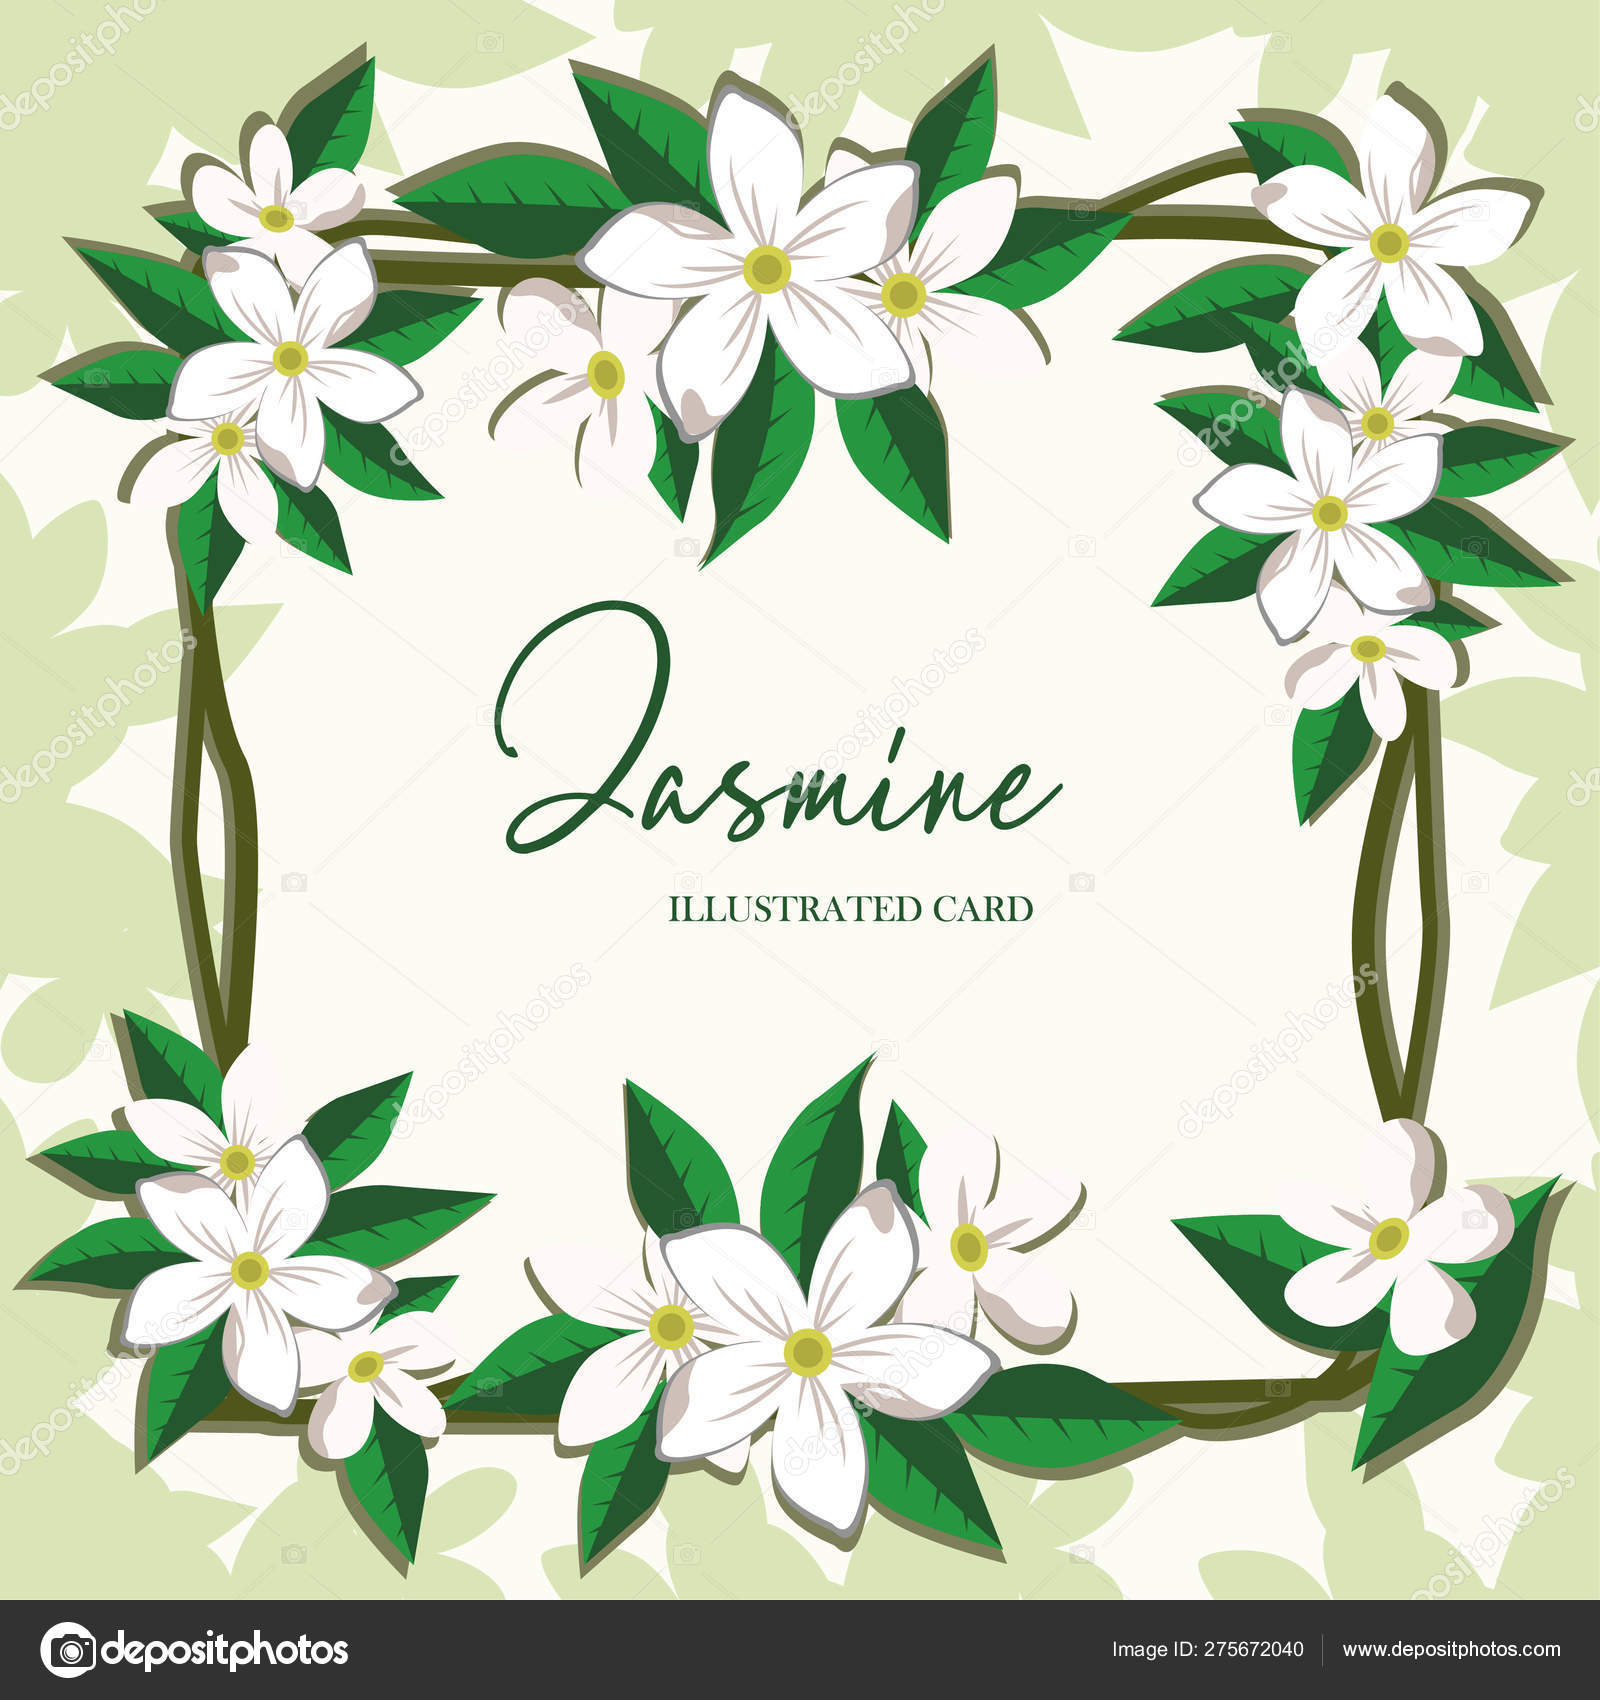 Vector Jasmine Flowers Horizontal Banner Design For Tea Natural Cosmetics Beauty Store Health Care Products Perfume Essential Oil Aromatherapy Can Be Used As Greeting Card Wedding Invitation Stock Vector C Yaroslavna2408 275672040